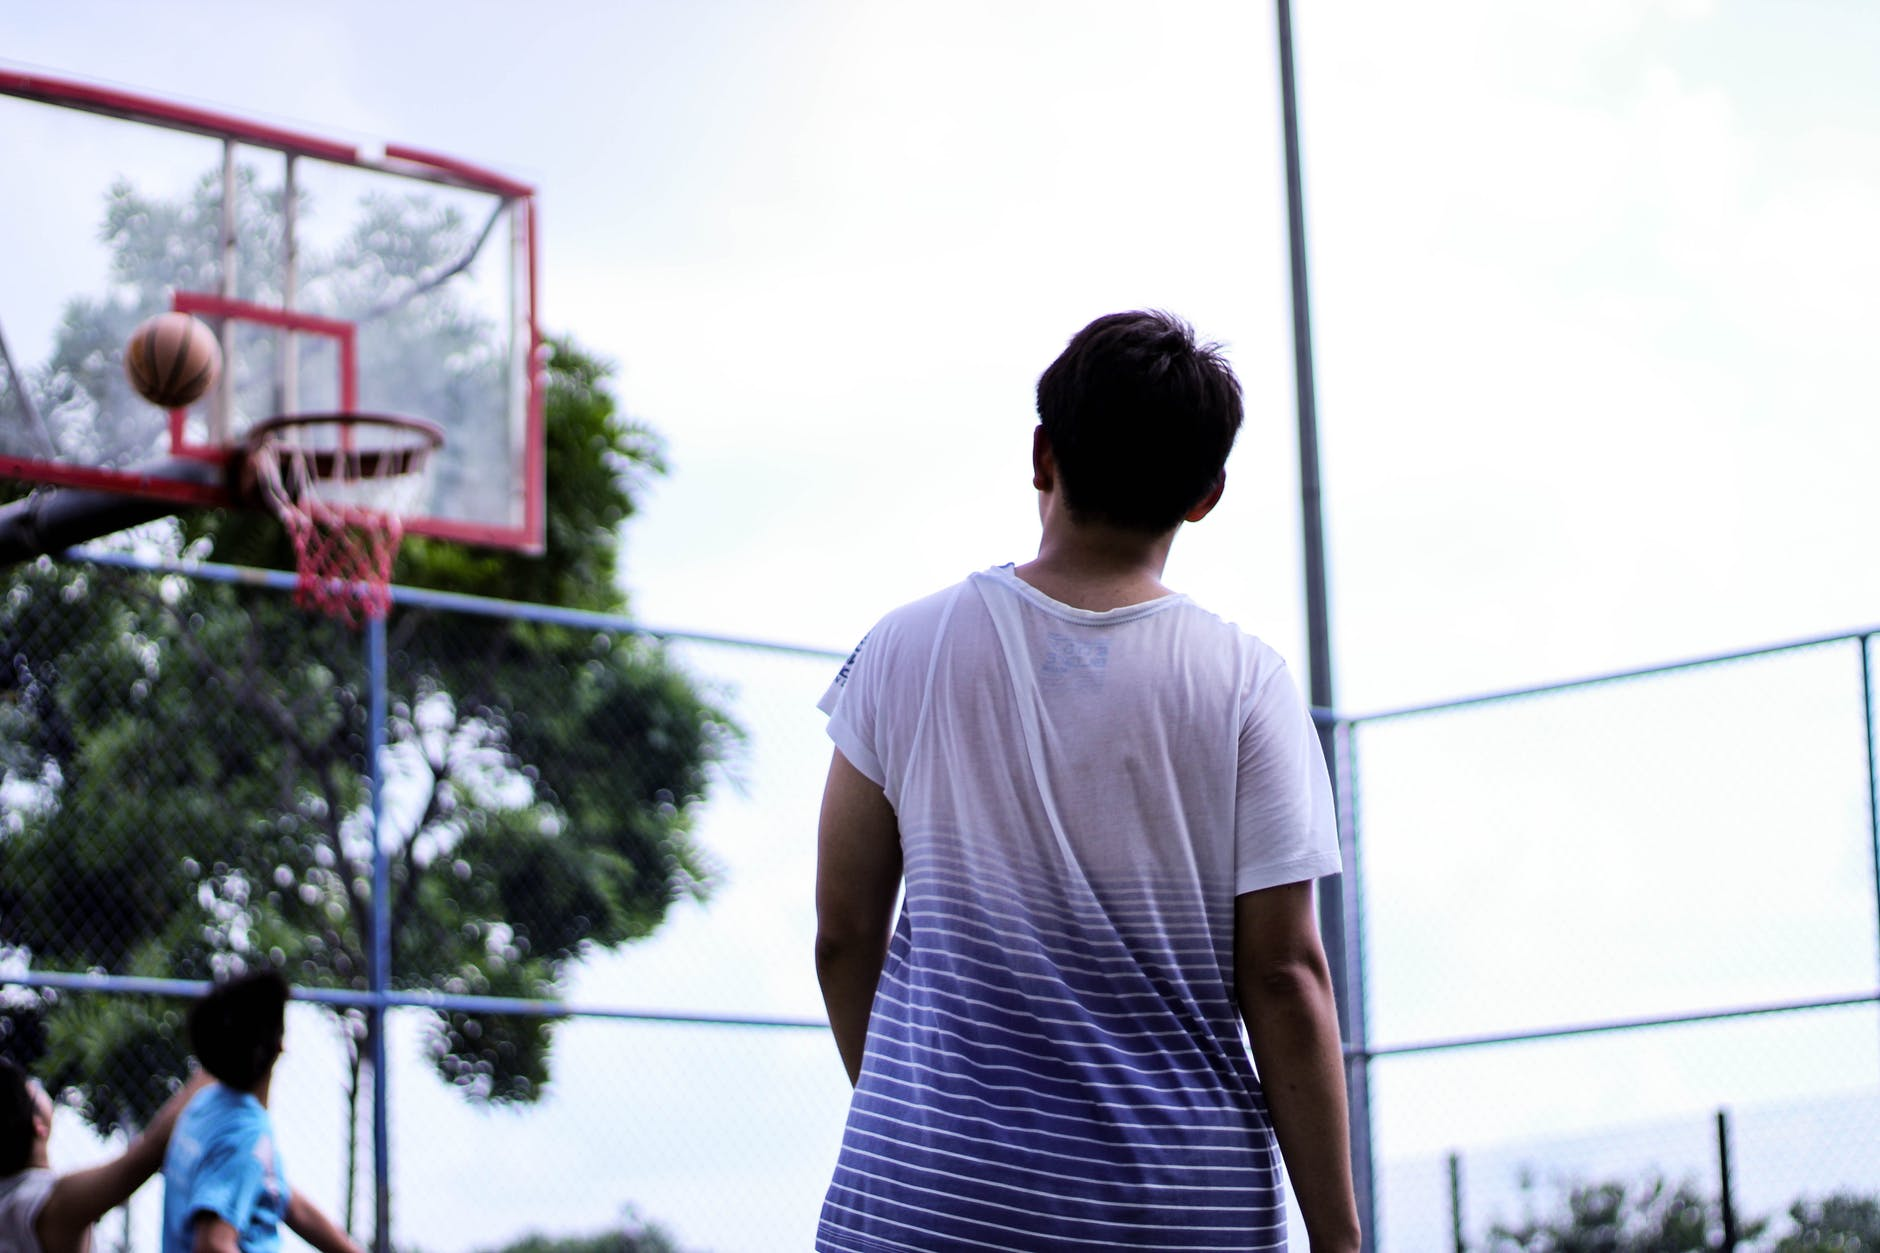 man standing near red basketball hoop system